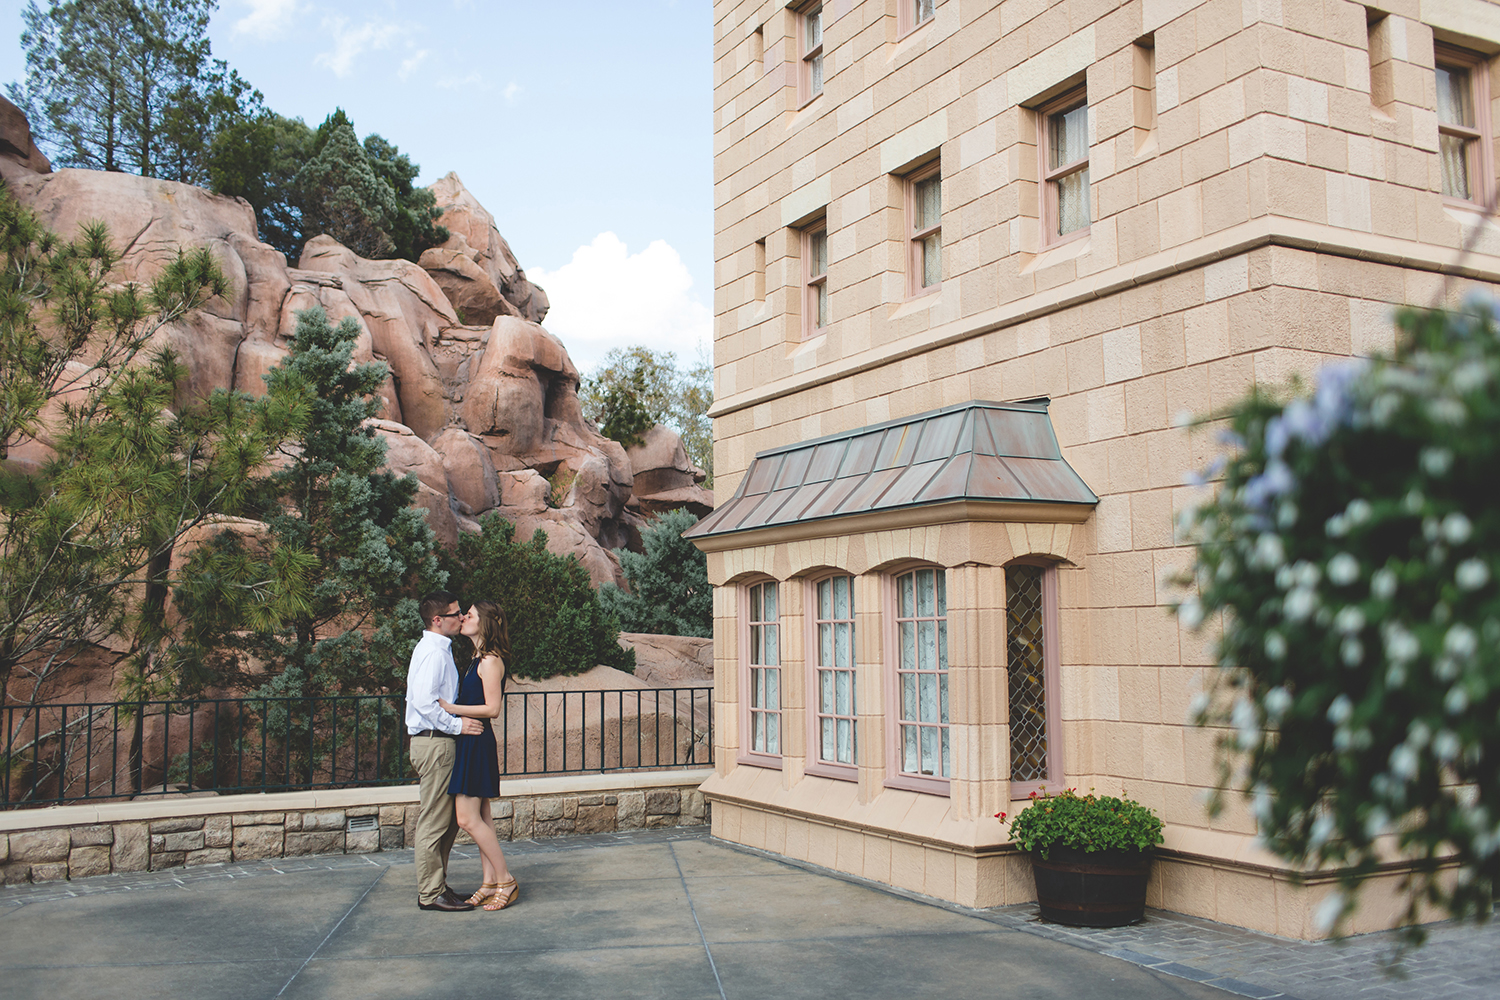 jaime DiOrio - Epcot Engagement photo - Epcot Engagement Session - couple kissing at epcot - Disney Engagement photo - orlando wedding photographer.jpg